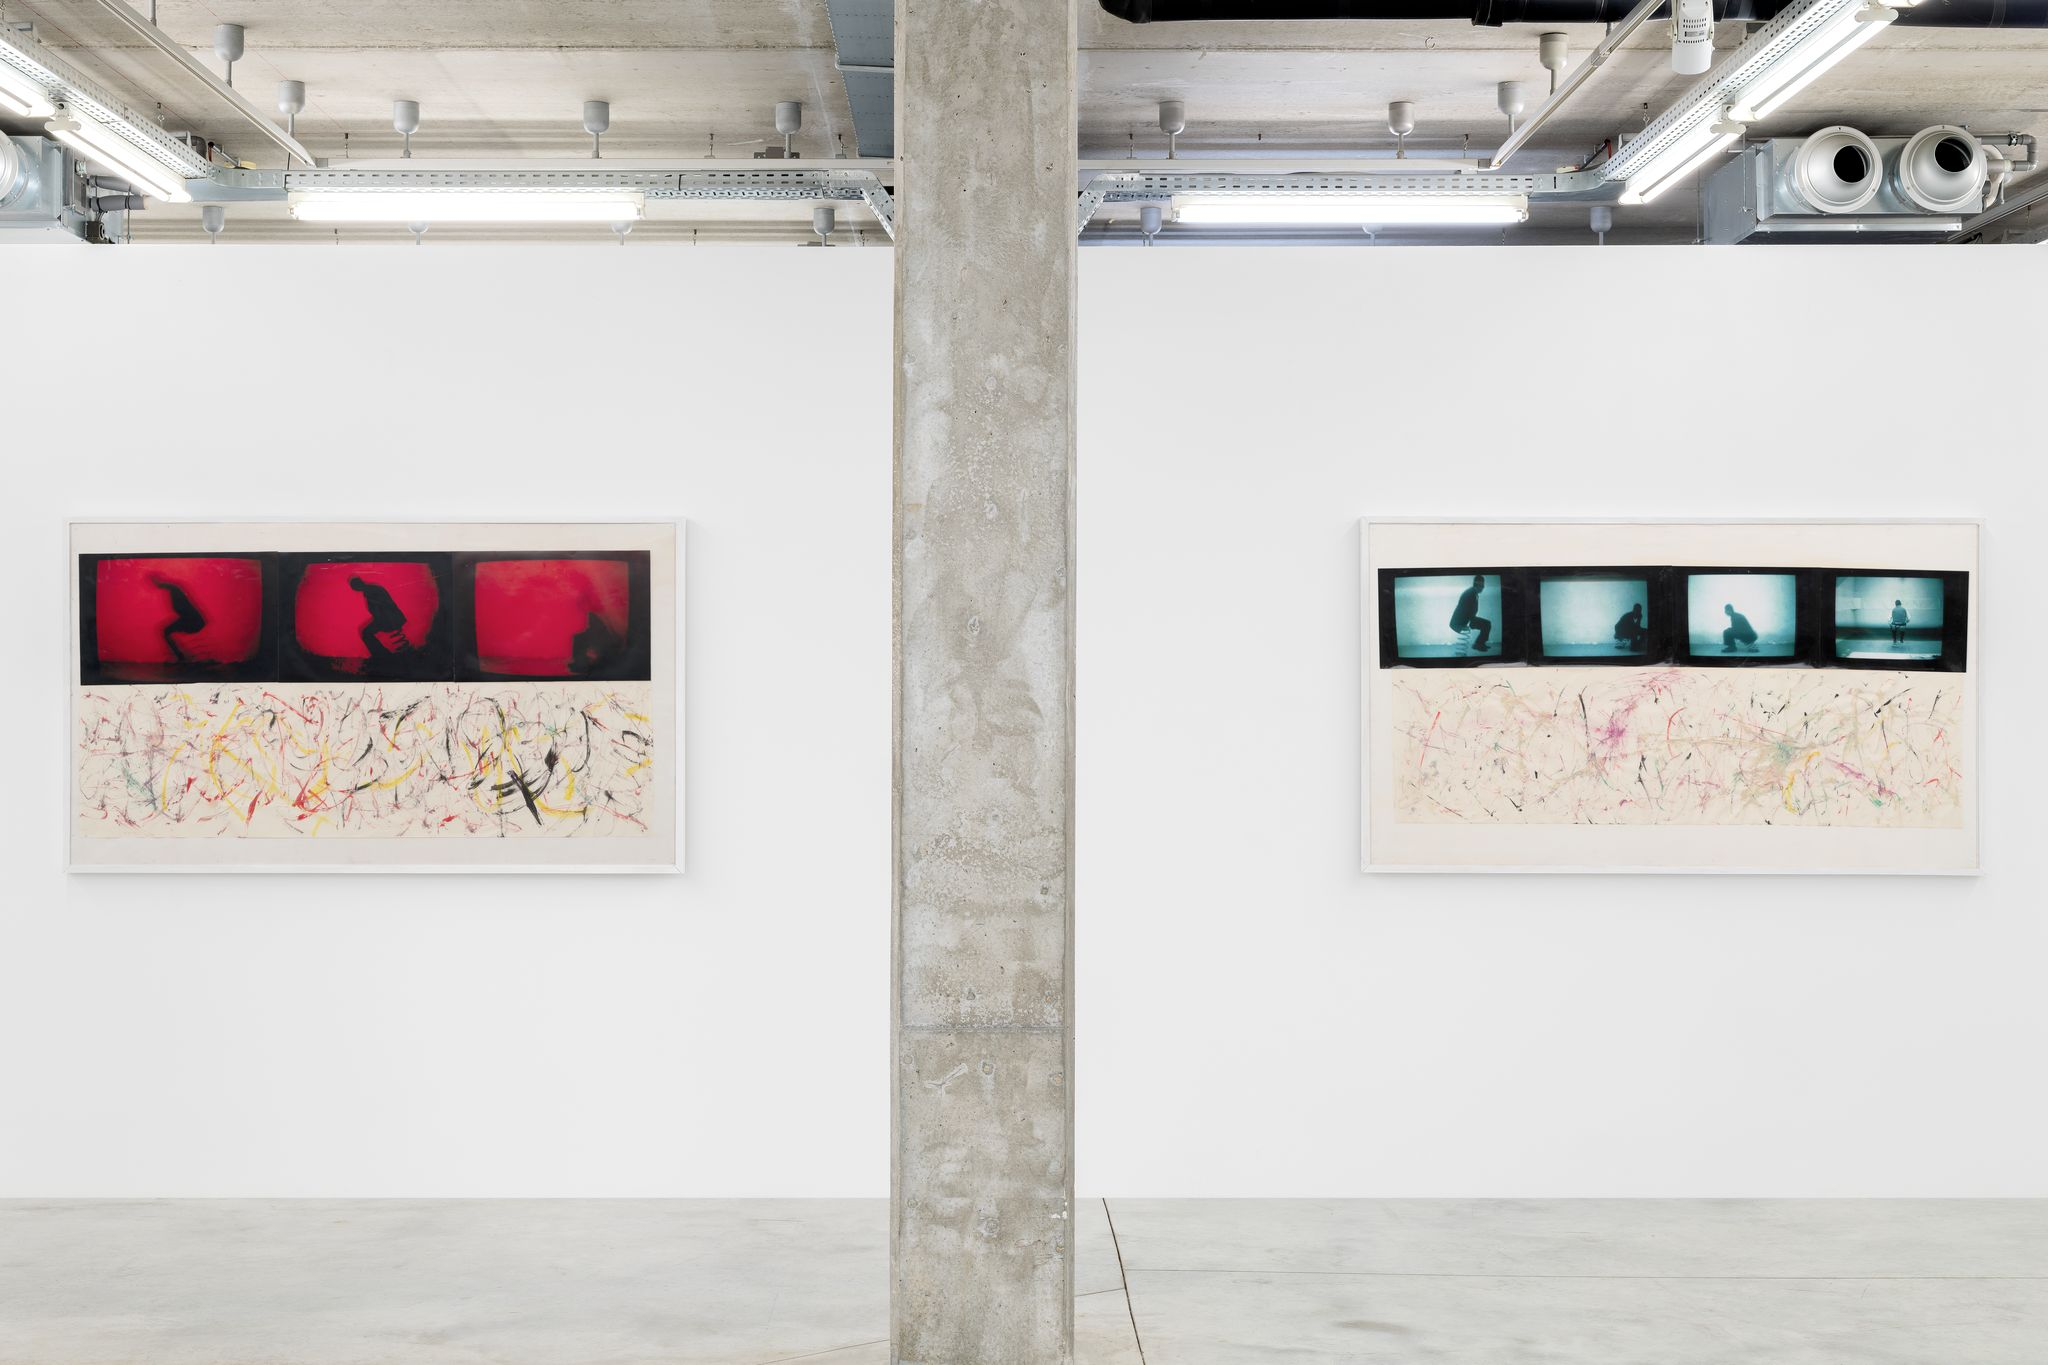 Installation View, Rudolf Polanszky, Chimera, Almine Rech Brussels, October 14, 2019 — December 21, 2019. © Courtesy of the Artist and Almine Rech - Photo: Hugard & Vanoverschelde